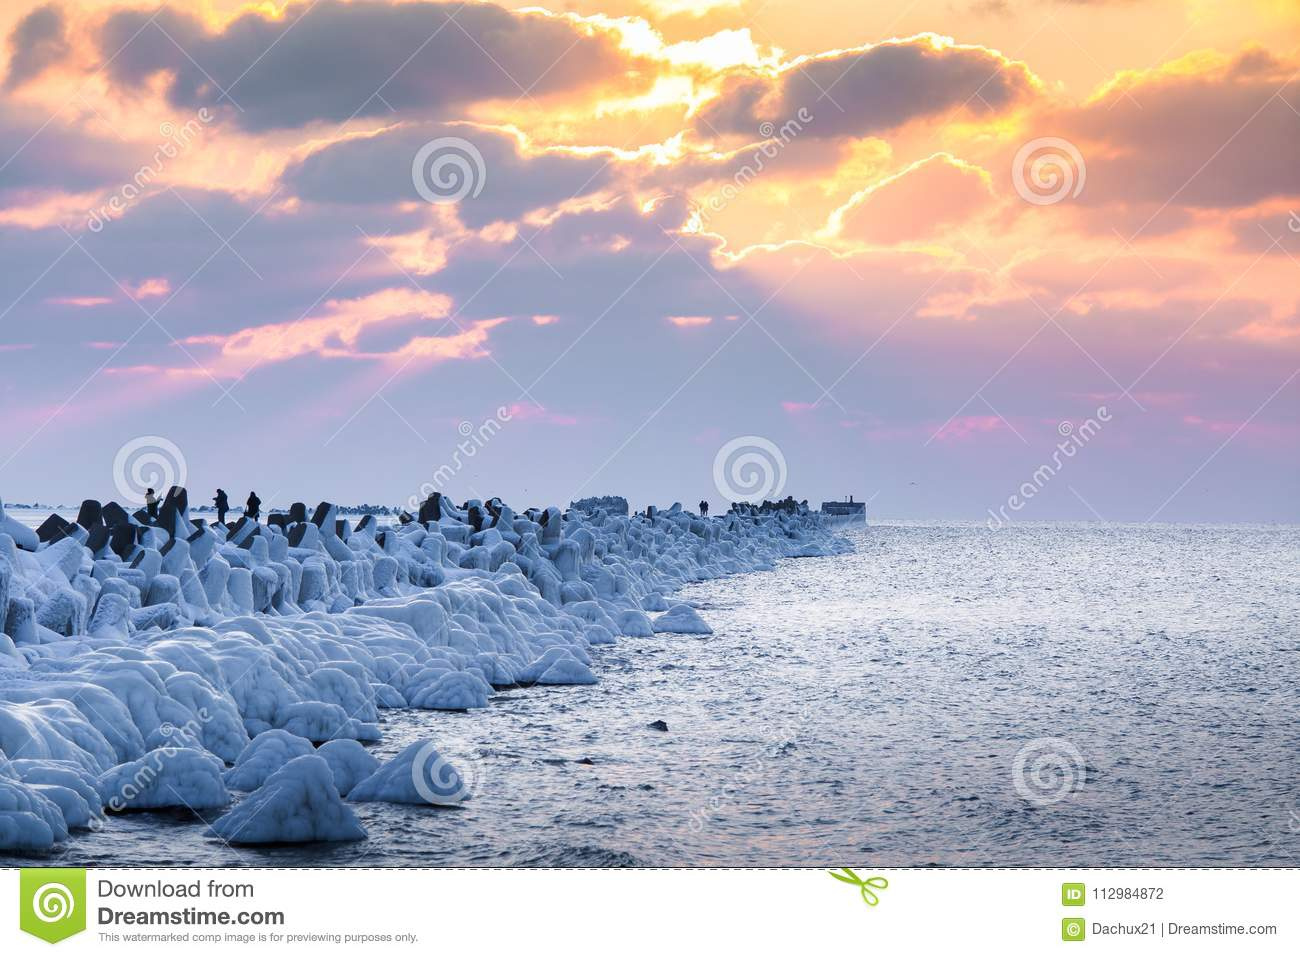 A beautiful evening landscape of a frozen breakwater in the Baltic sea. Winter landscape at the beach.